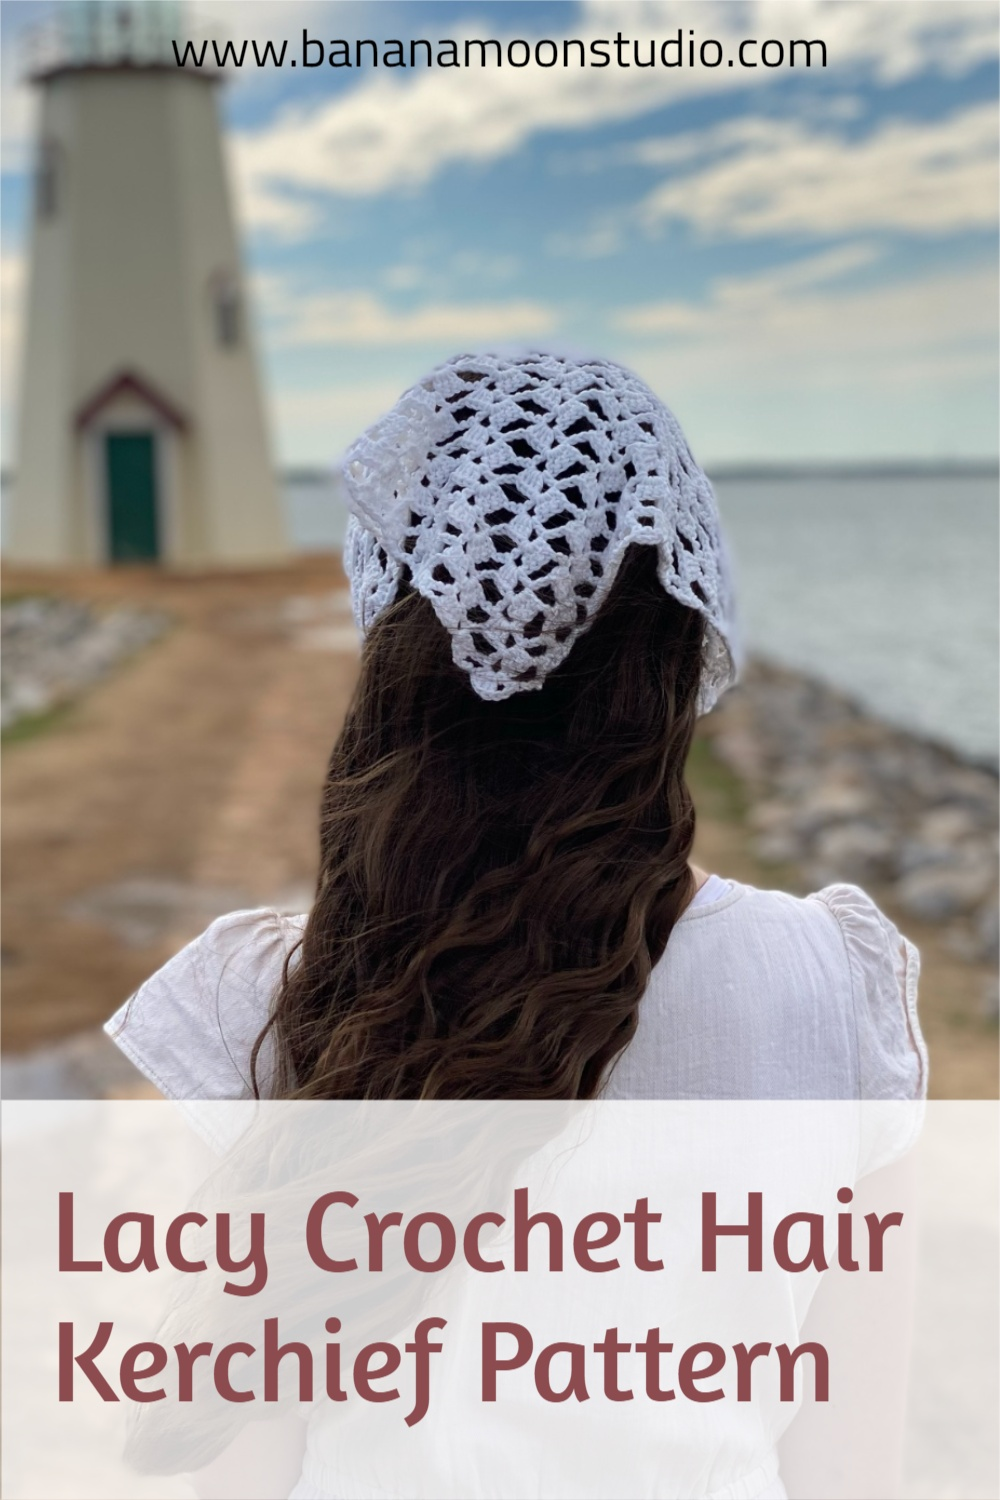 Lacy crochet hair kerchief pattern free from Banana Moon Studio. Girl in white top with long dark hair and a white lace hair kerchief. Light house and lake in the background.